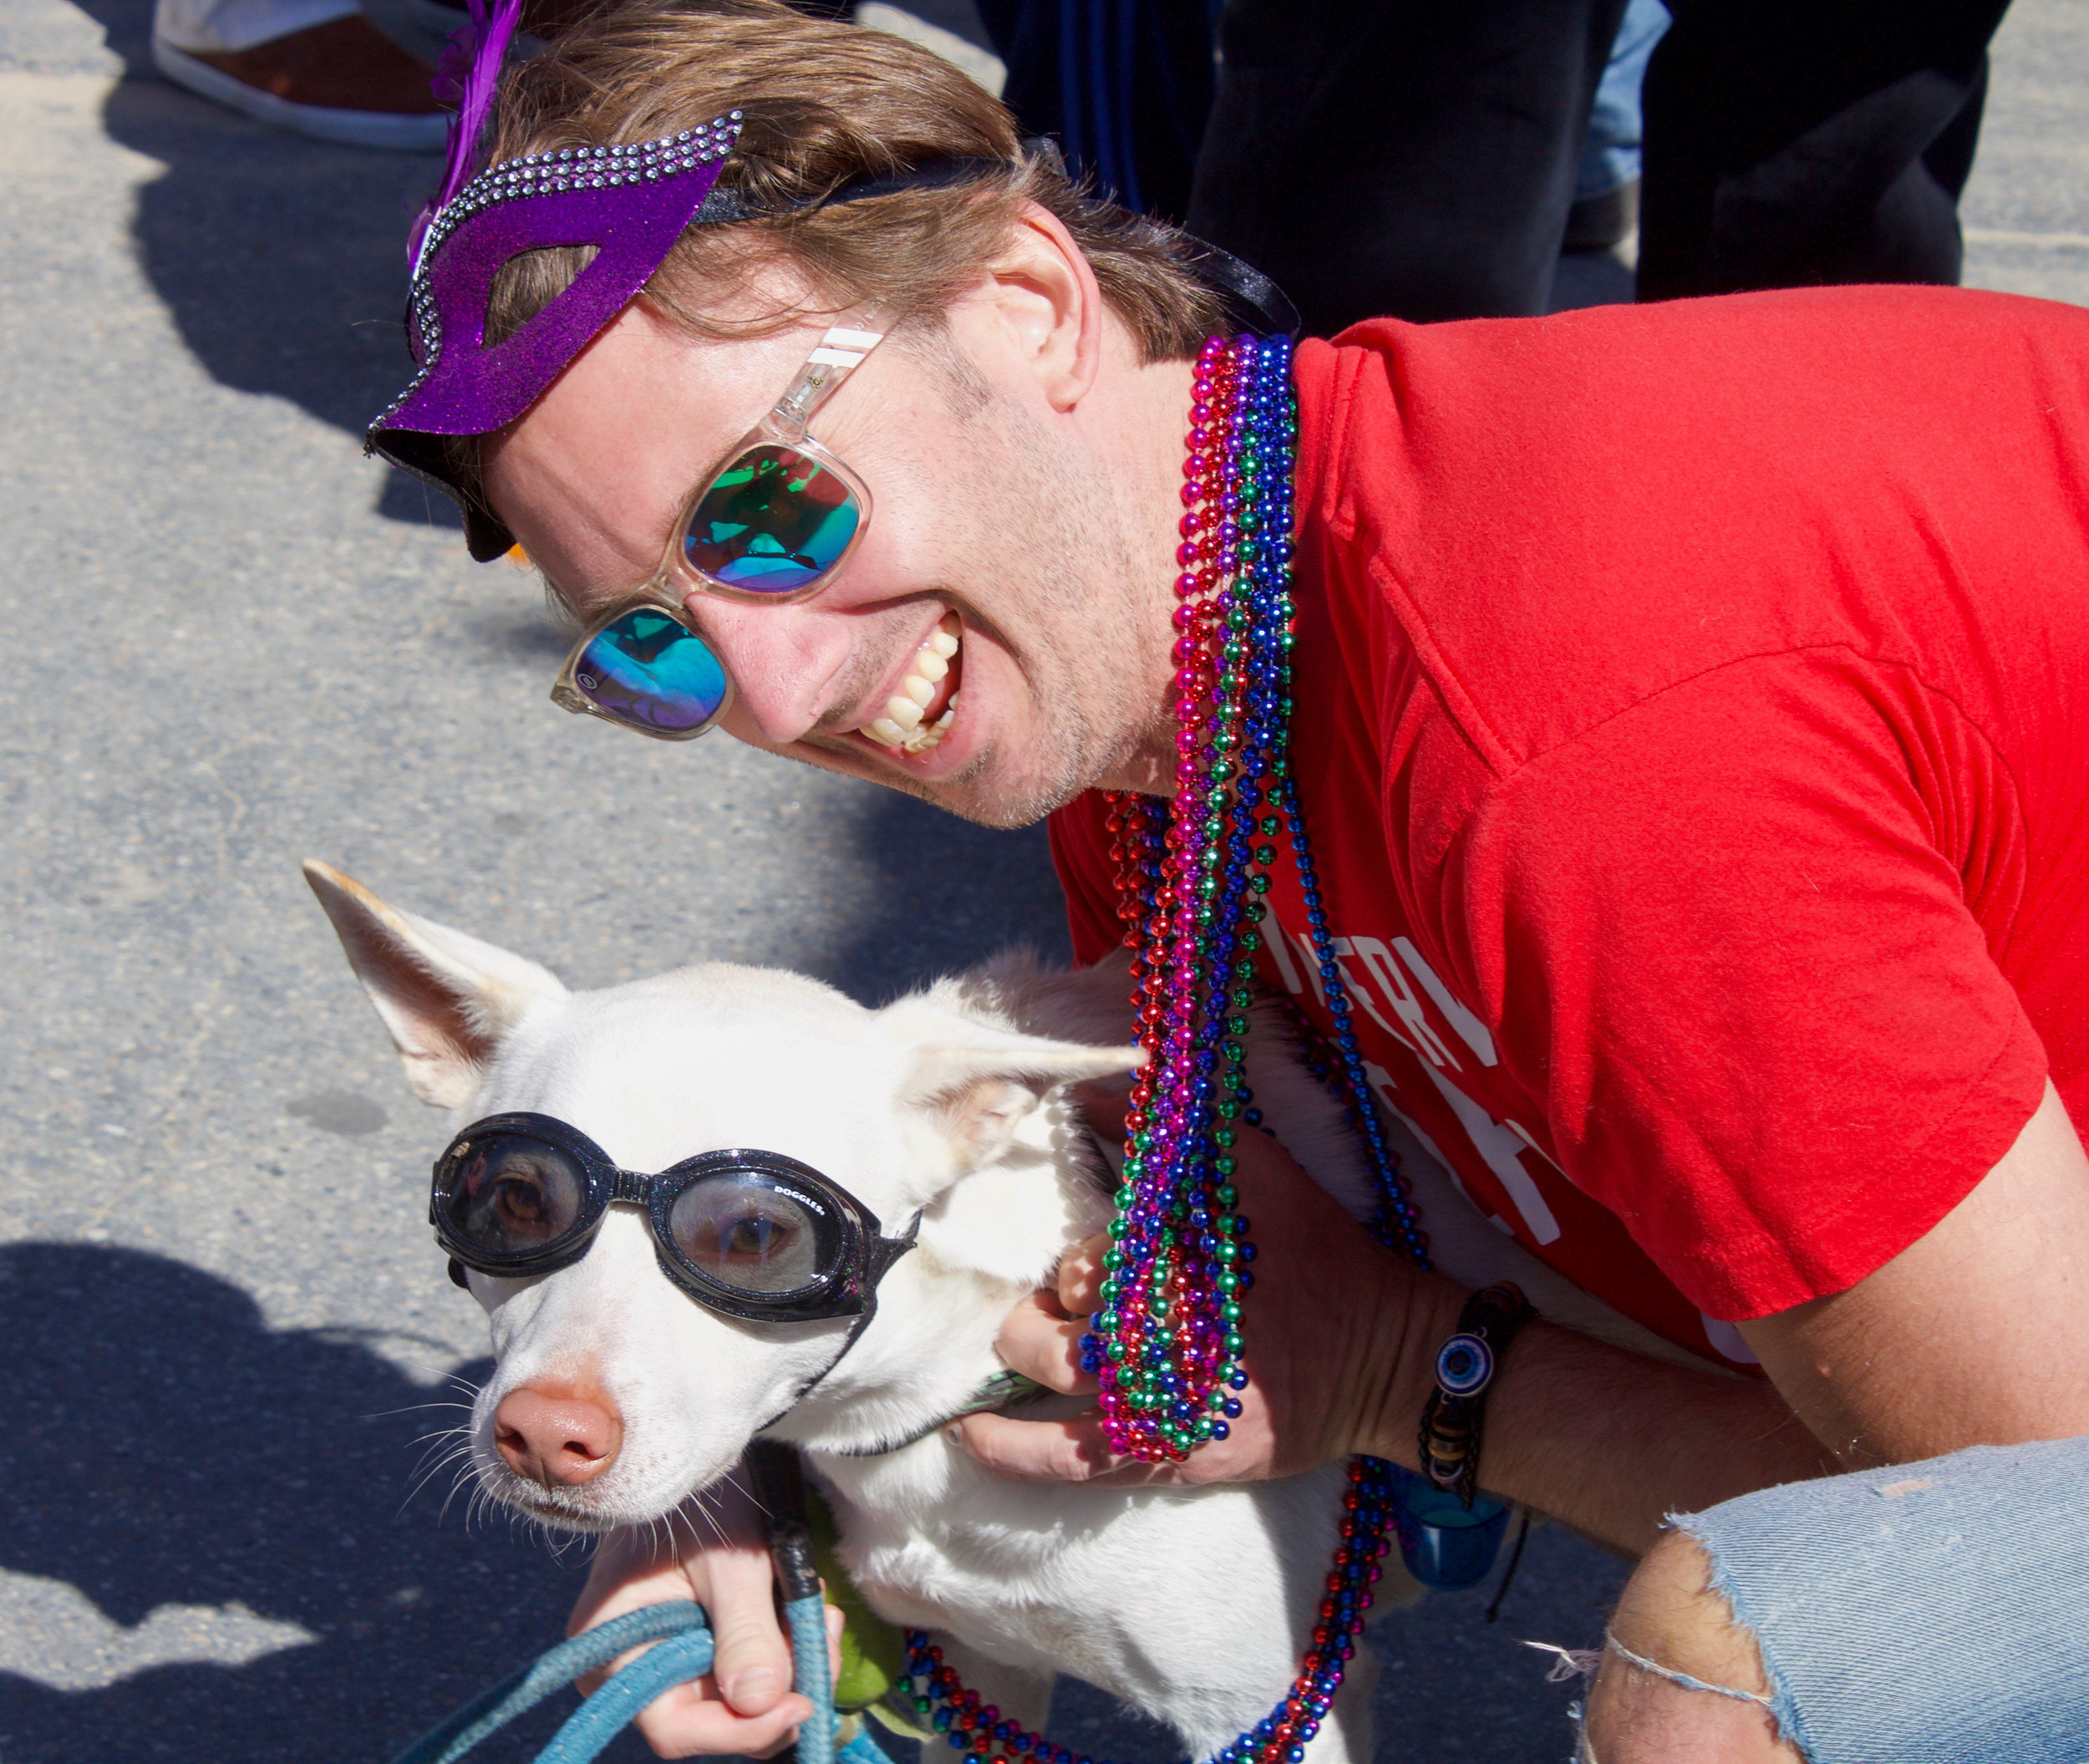 Yogi and his owner, Timothy Hansen, pose for a photo from a passerby as they wait for the 17th annual Venice Beach Mardi Gras parade to begin on Feb 23, 2019, in Los Angeles, California. Photo by Danica Creahan.